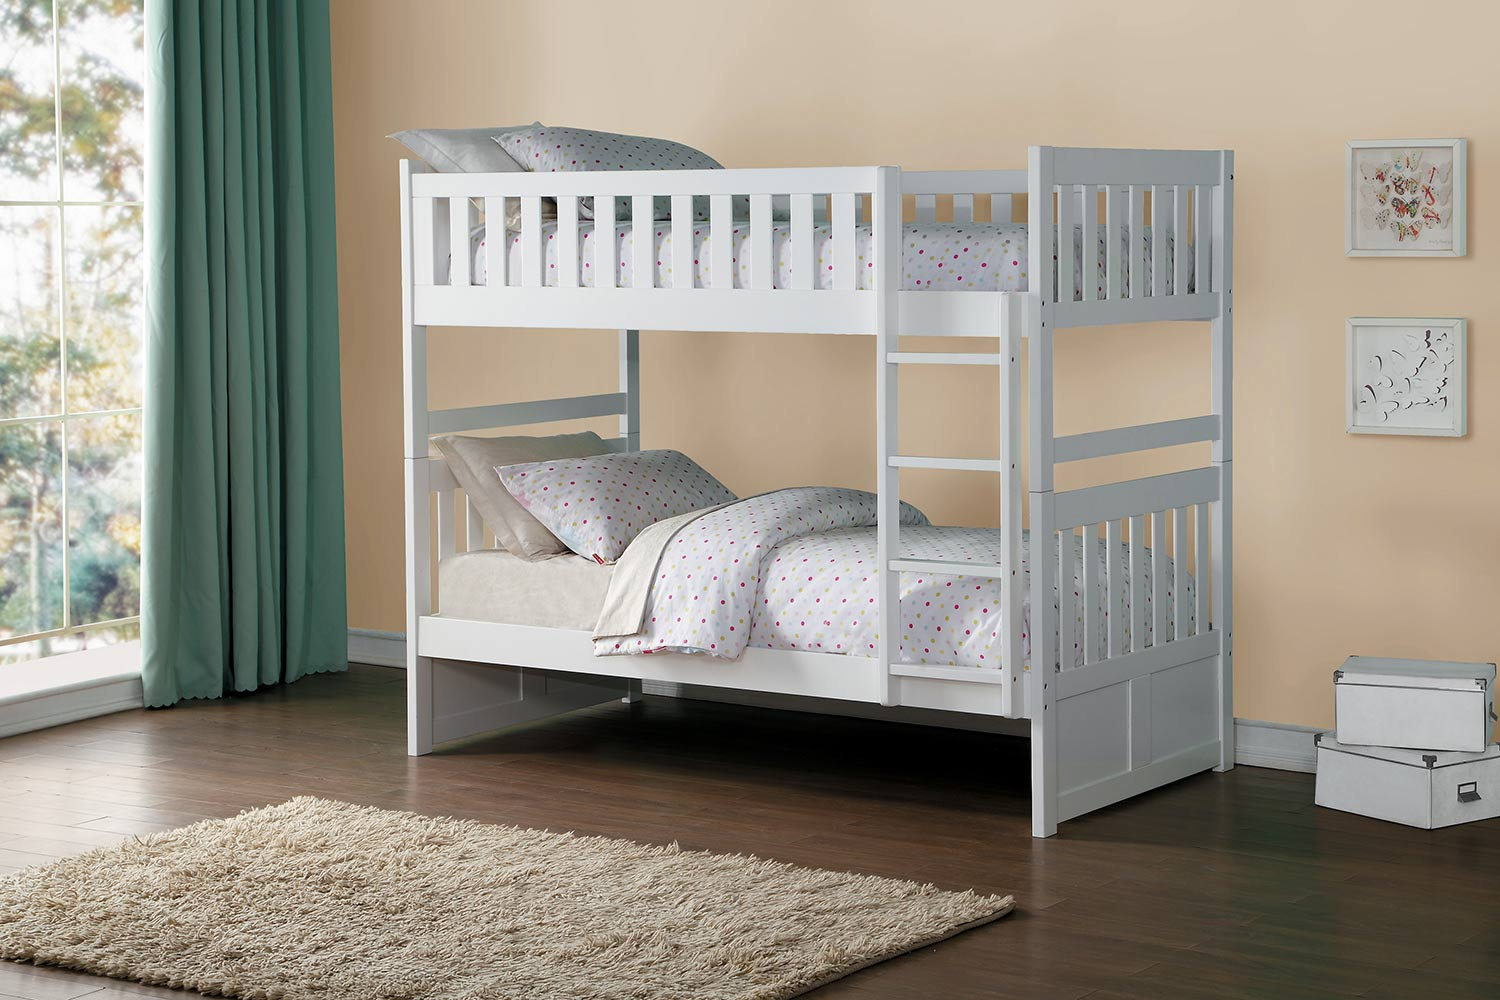 Homelegance Galen Twin over Twin Bunk Bed - White